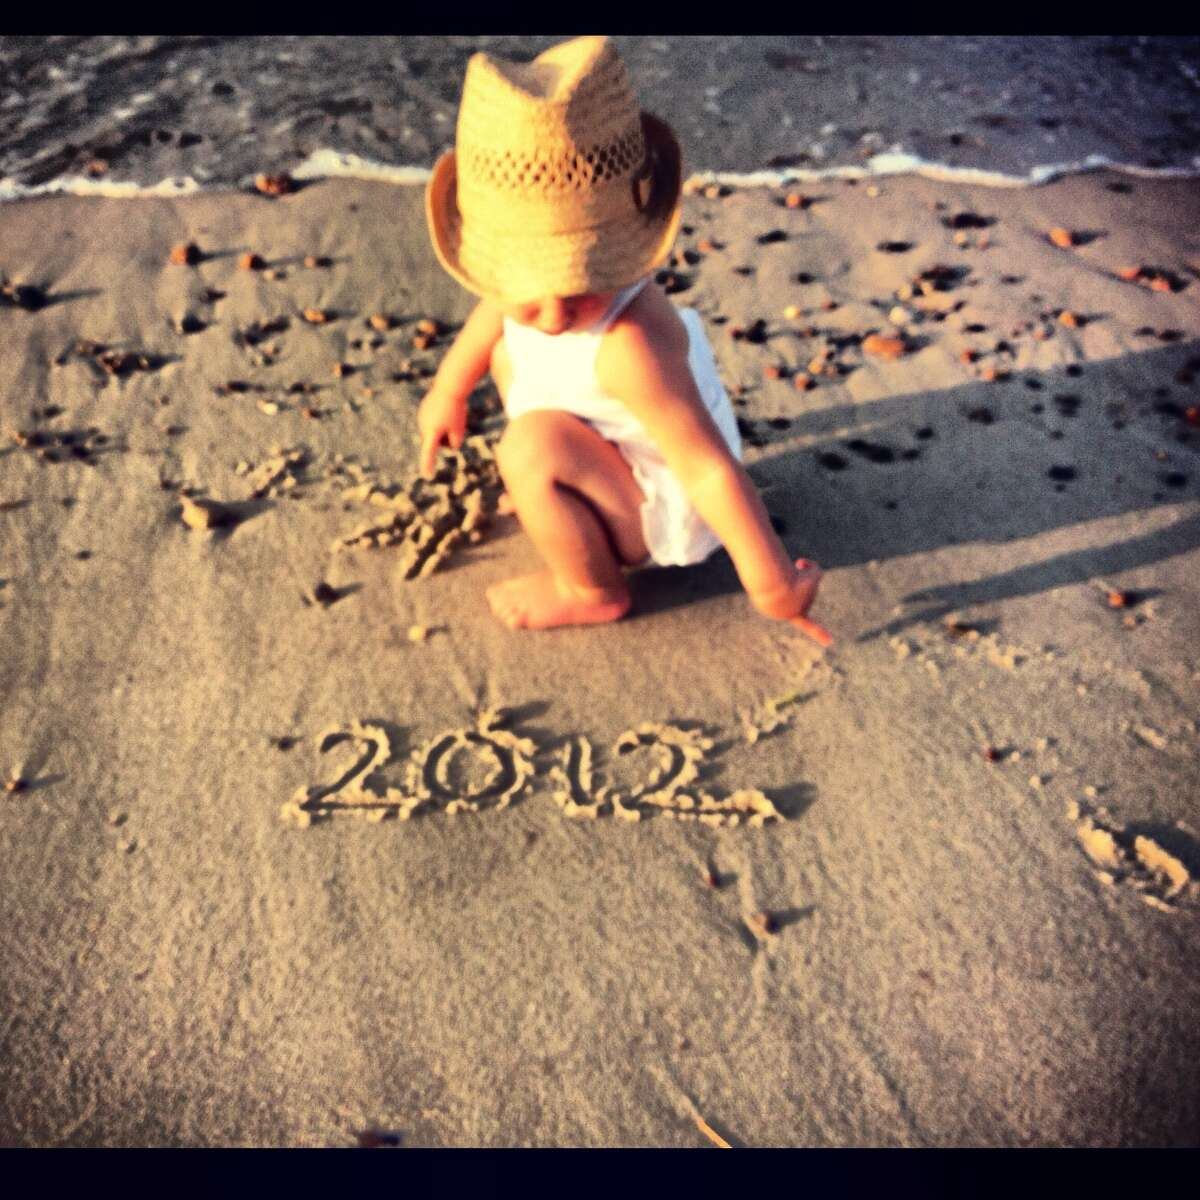 Olivia Stickles thinks ahead as she signs off on 2012. She was 14-months old in August during the family vacation with mom and dad, Jessica and David, to Cape Cod. It was a special trip because it was the last vacation with just the three family members ? little brother Jackson came along on Nov. 14. ?All of us have had an amazing 2012 and are looking forward to 2013,? David says. (David Stickles)